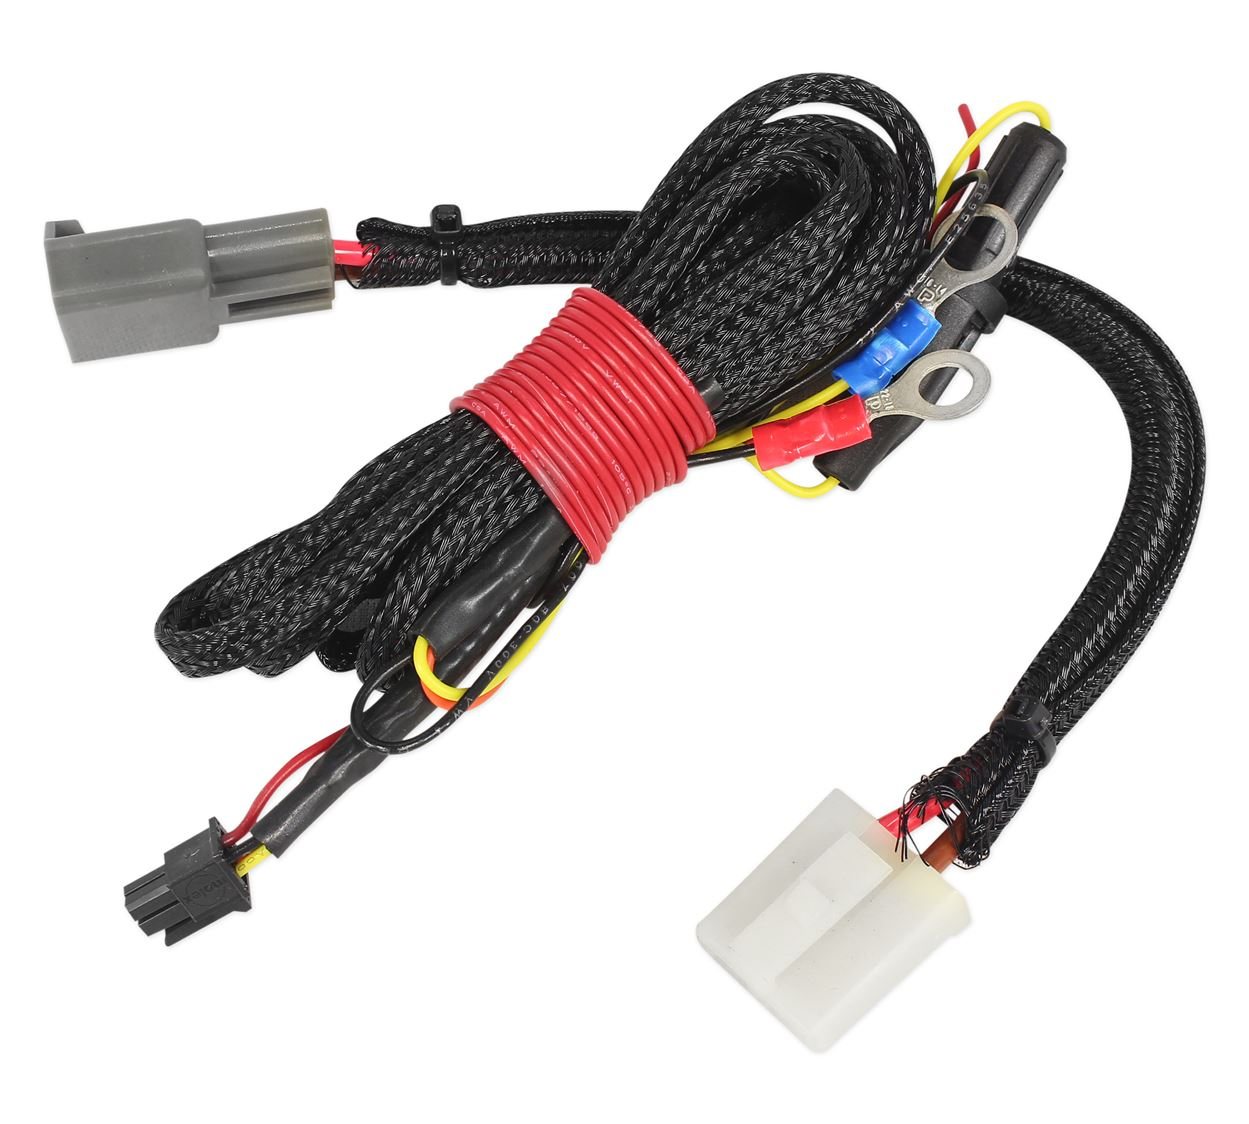 Gm Wiring Harnesses Walmart Schematic Harness